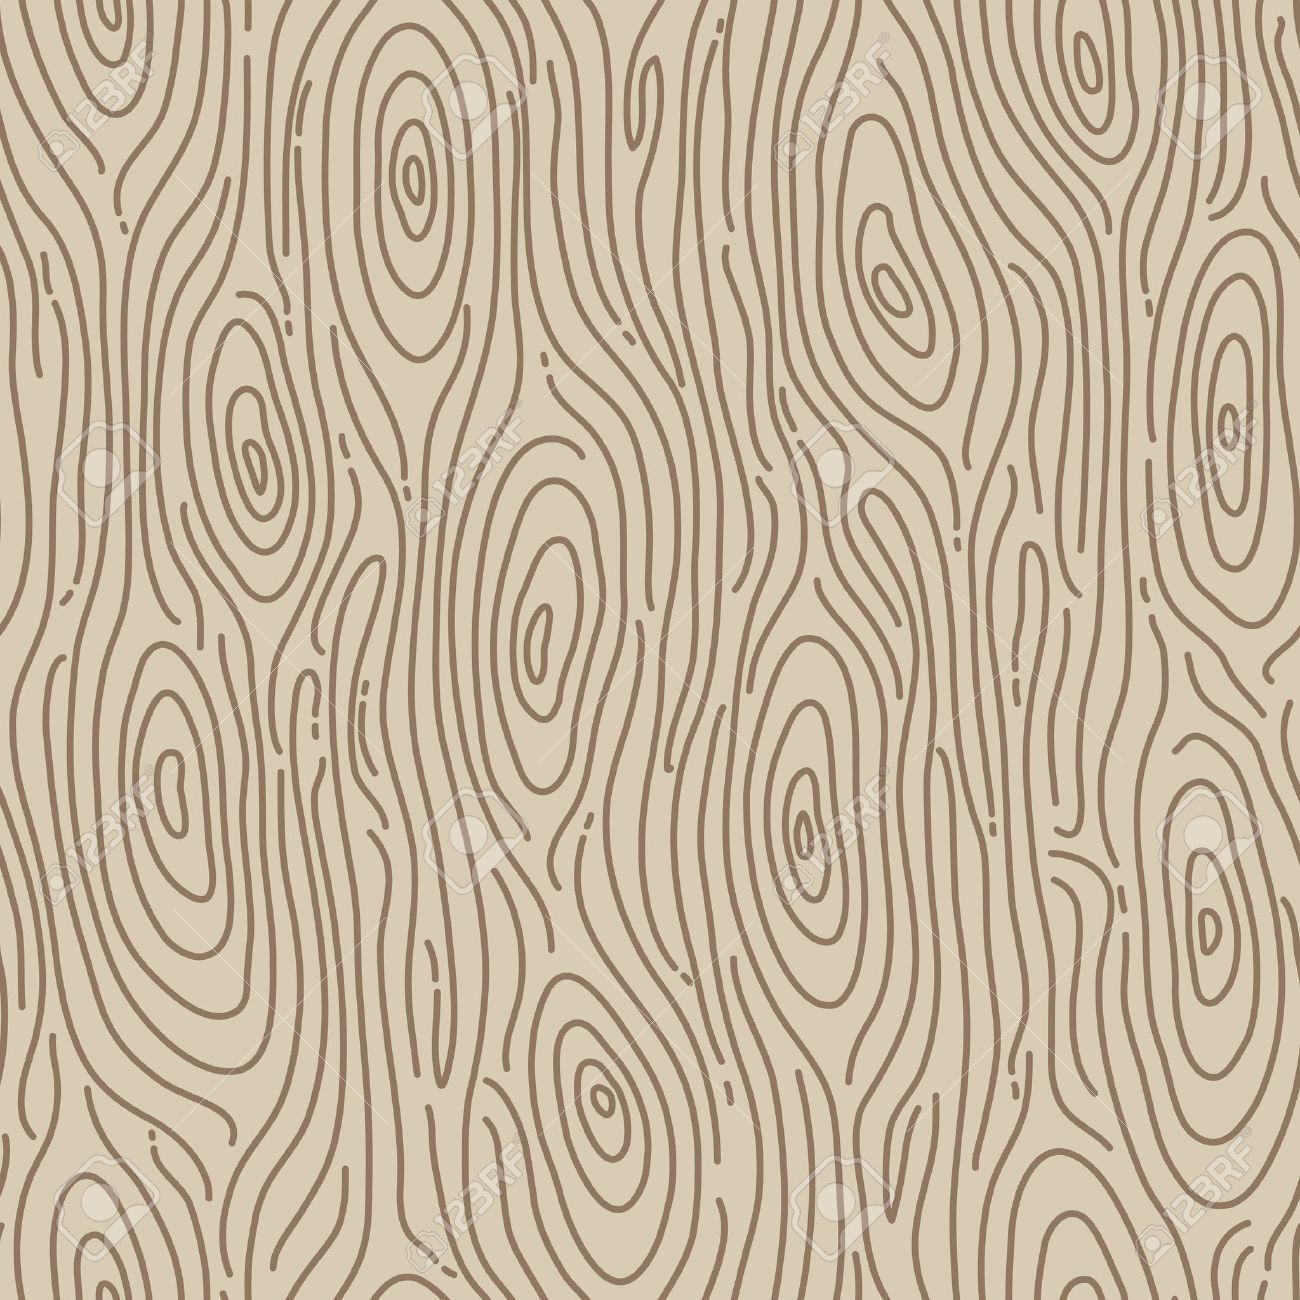 Retro wood seamless background - Vector illustration Stock Vector - 24158999